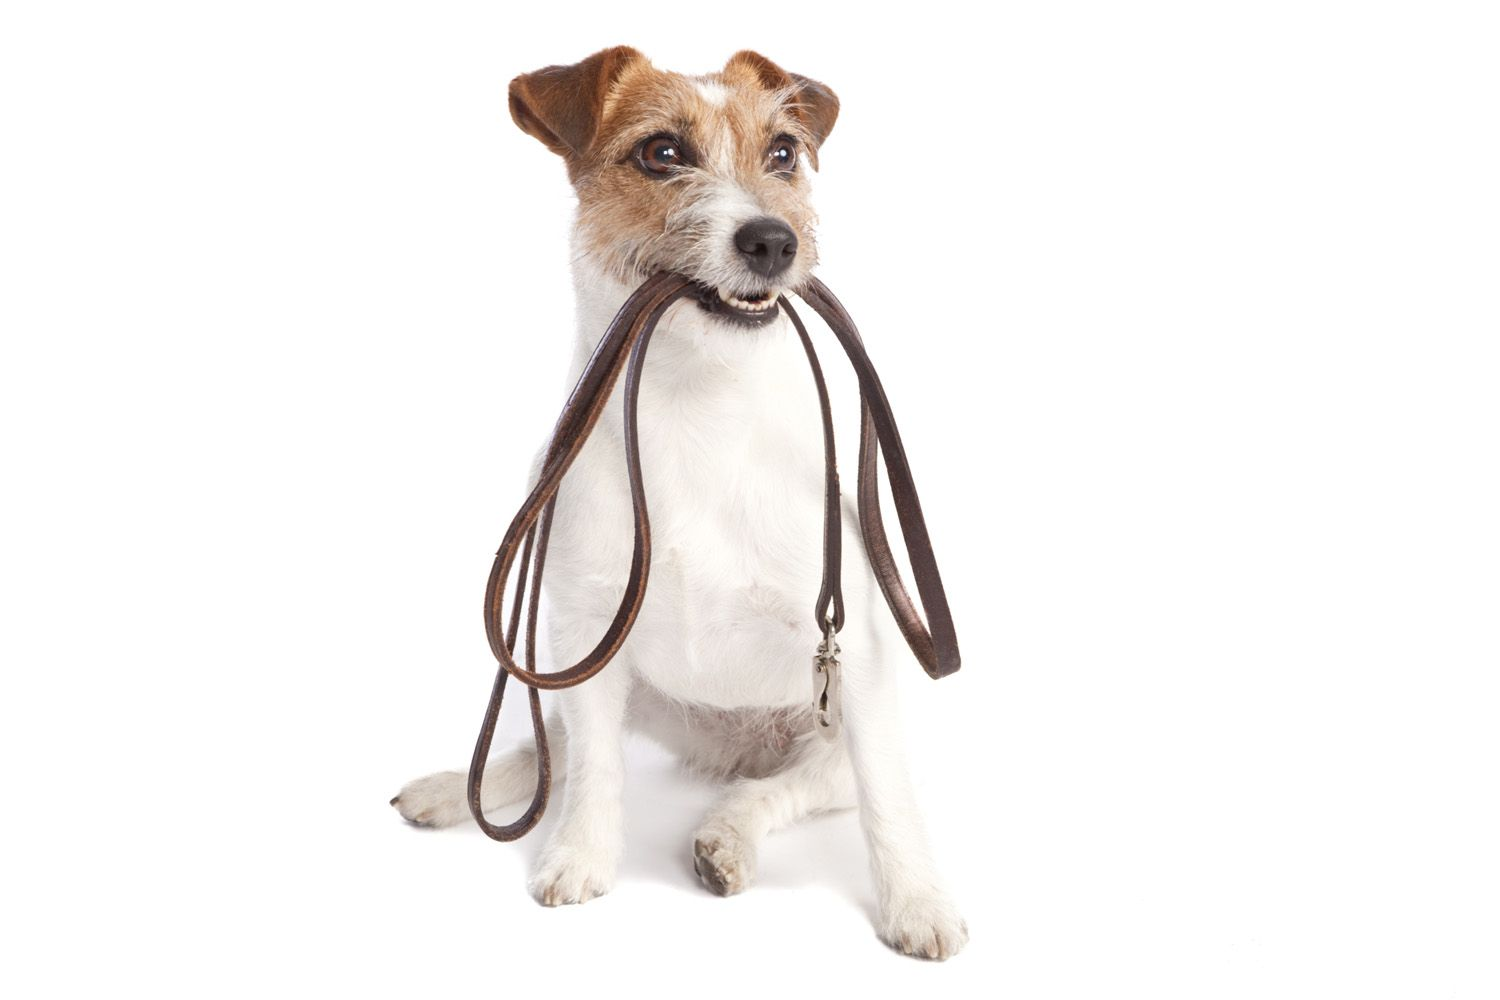 Nanette's Pampered Pets in Boca Raton provides Private Dog Walking Services